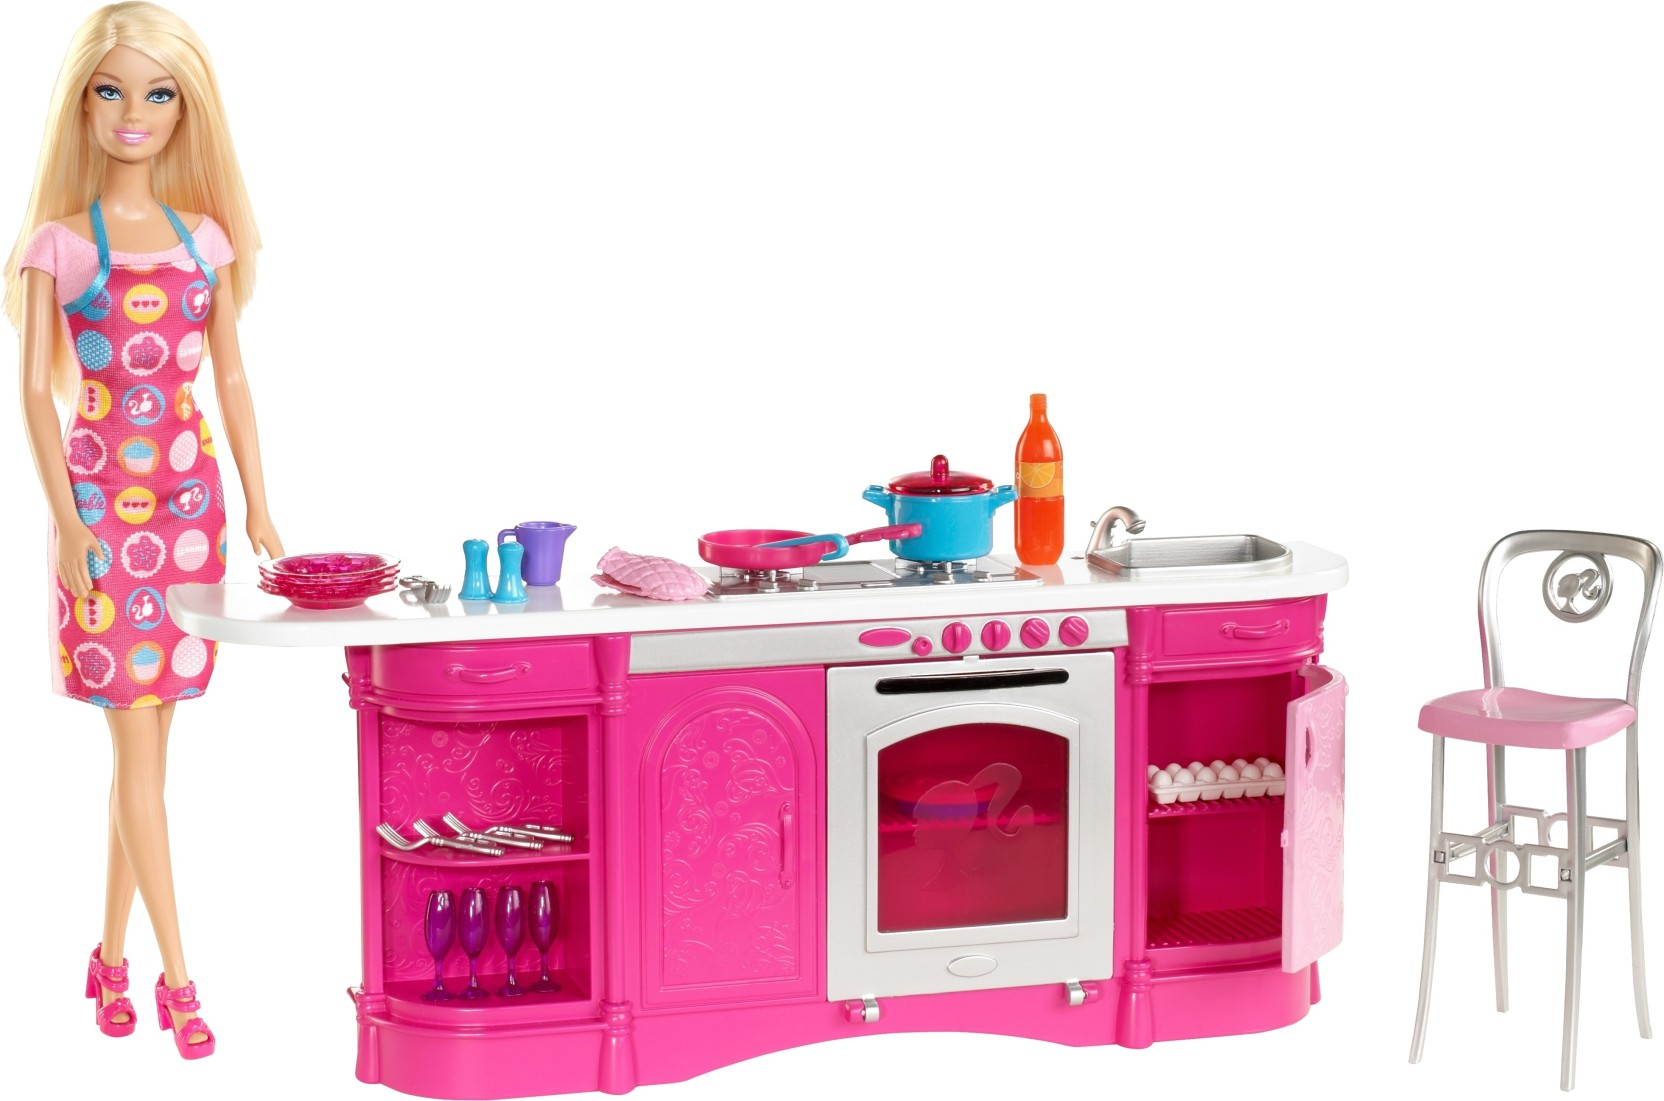 barbie cooking fun kitchen cooking fun kitchen shop for barbie products in india toys for 3. Black Bedroom Furniture Sets. Home Design Ideas